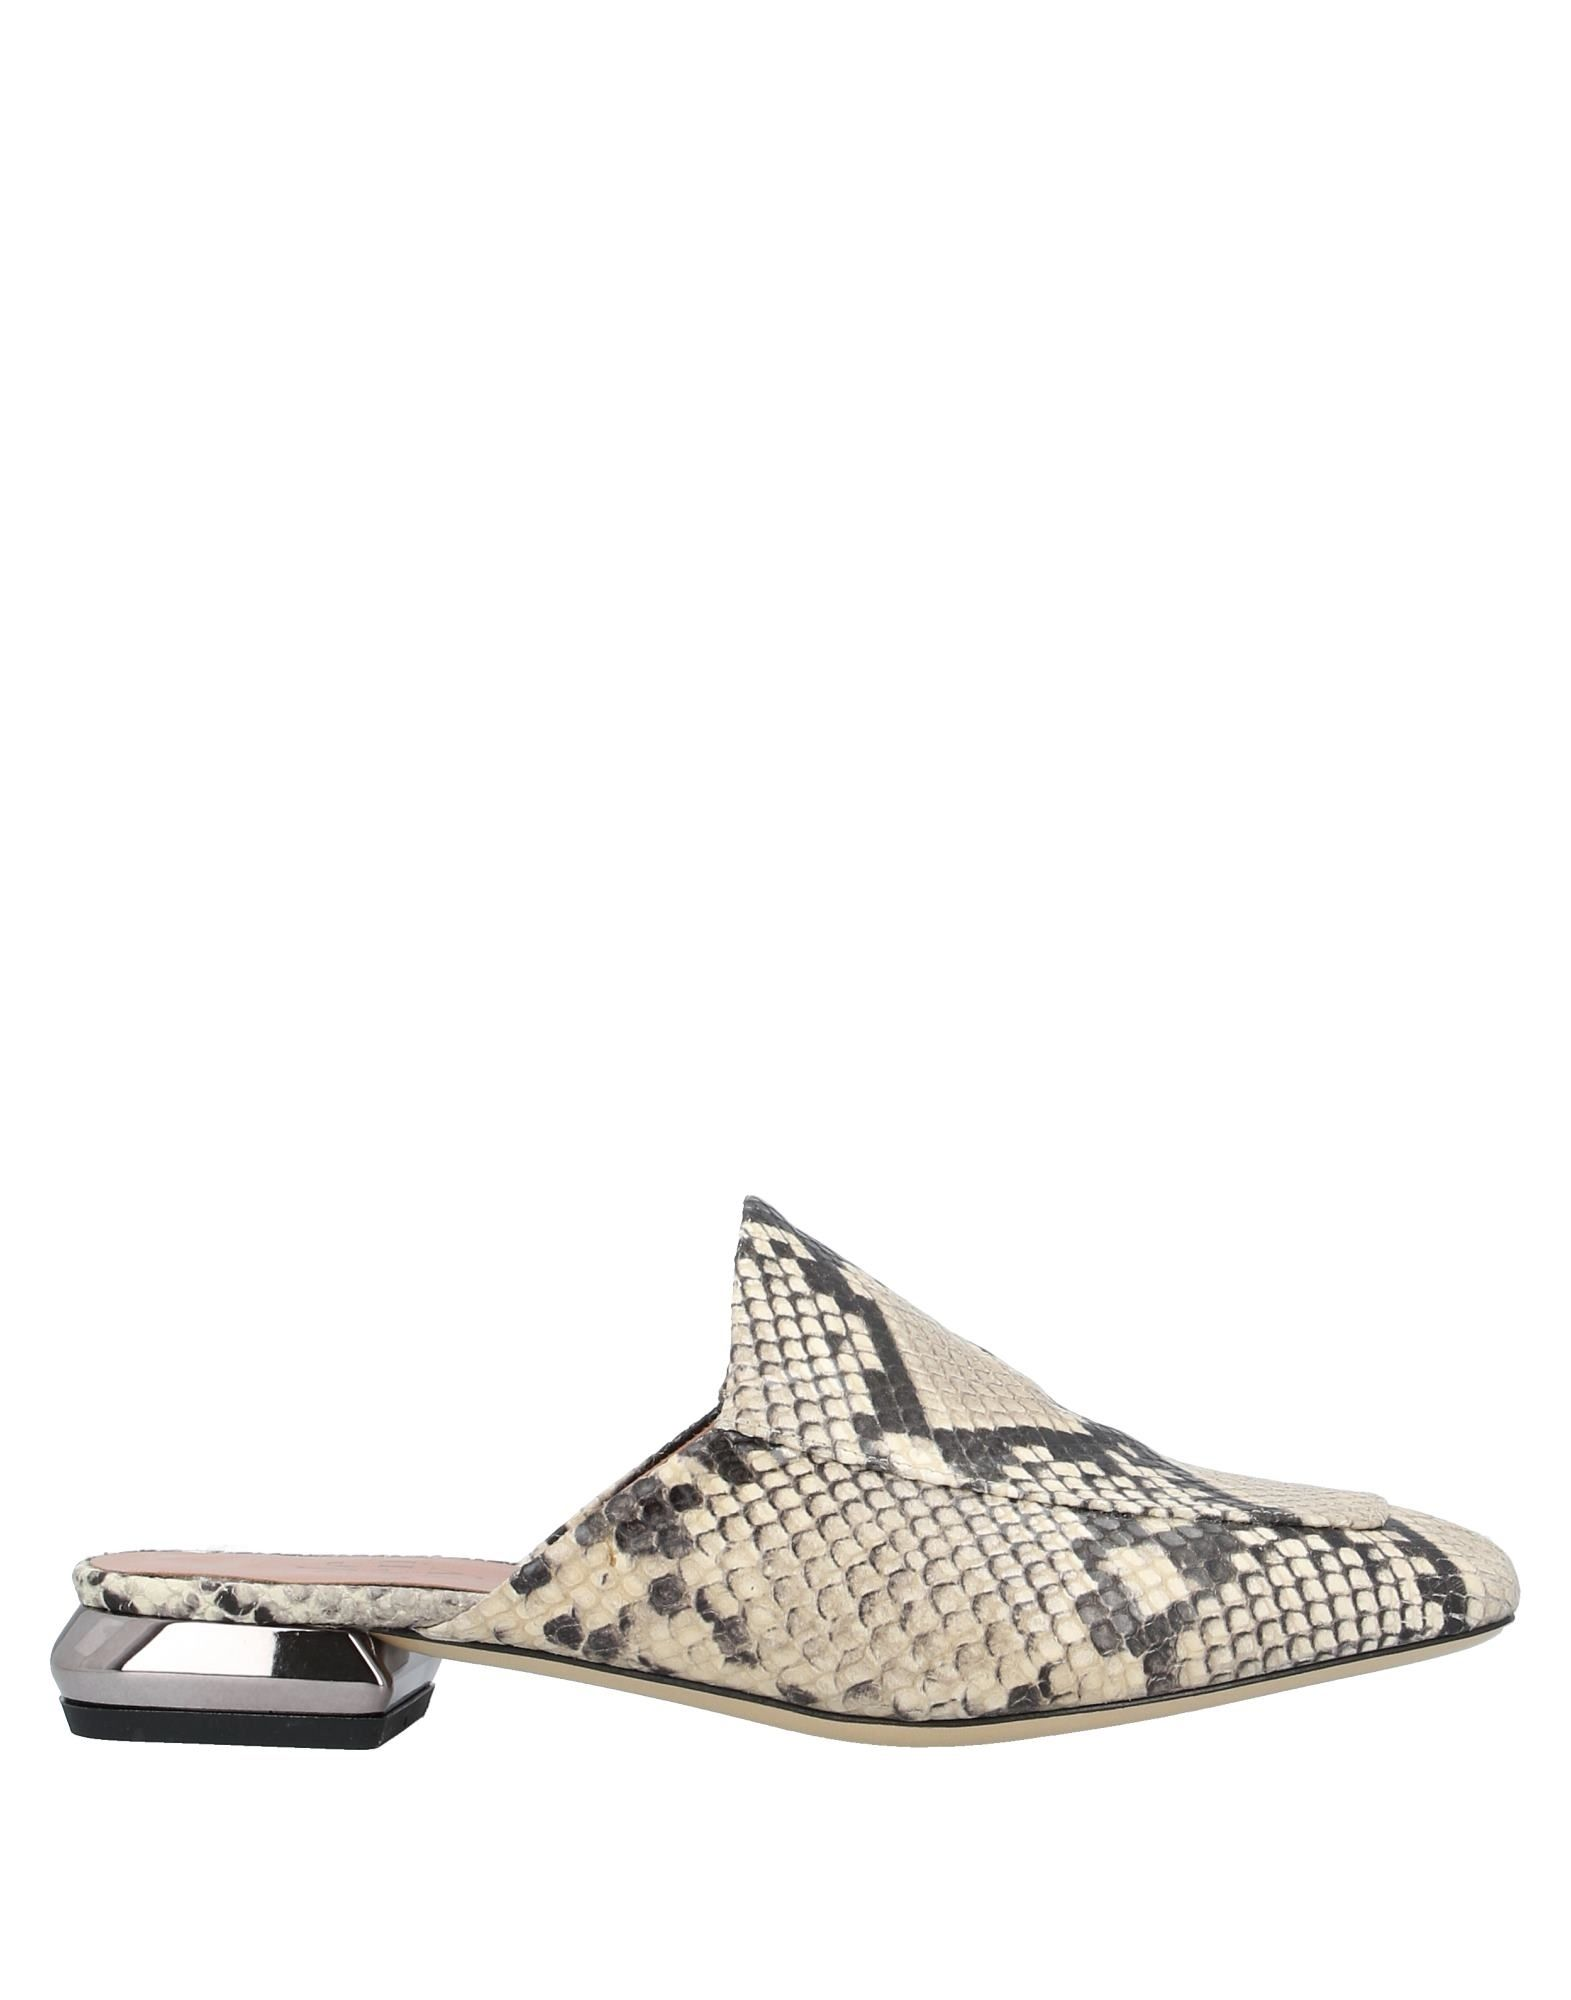 ELEVENTY Mules. leather, snakeskin print, no appliqués, two-tone, square toeline, flat, leather lining, leather sole, contains non-textile parts of animal origin. Soft Leather